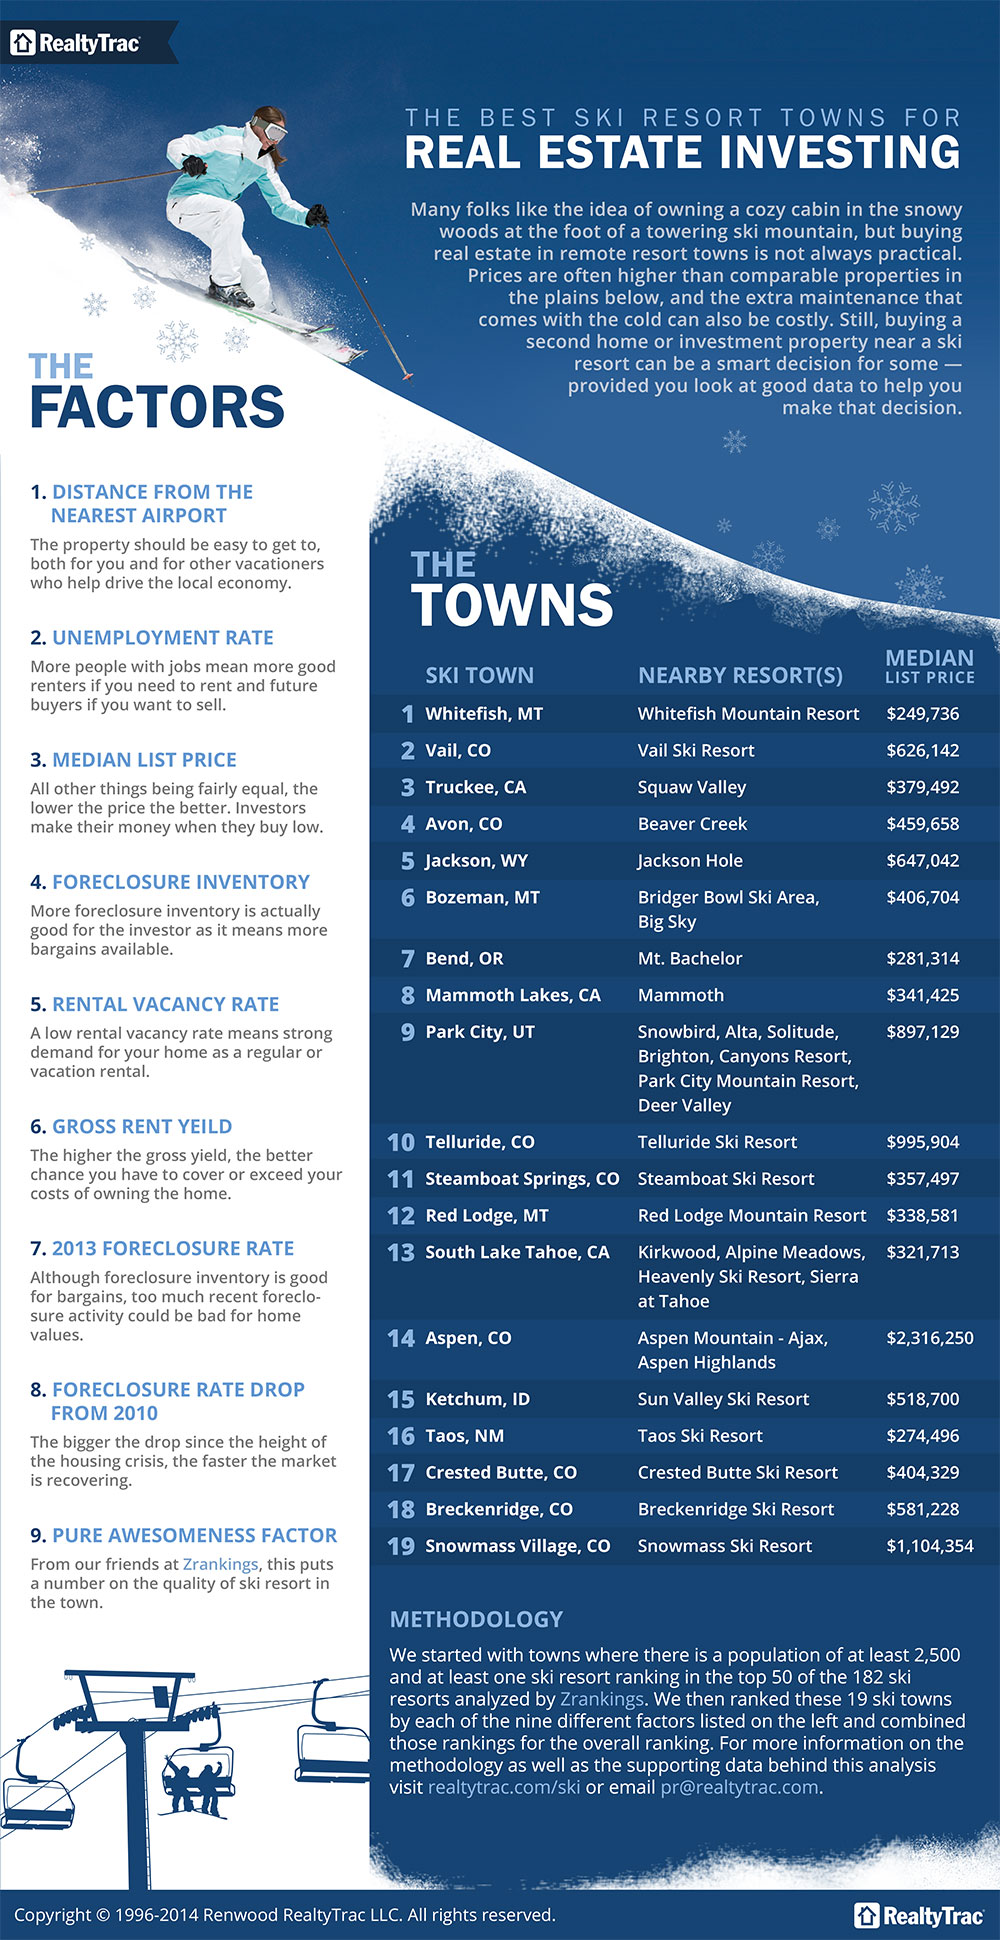 Best ski resort towns for Truckee Real Estate Investing blog post